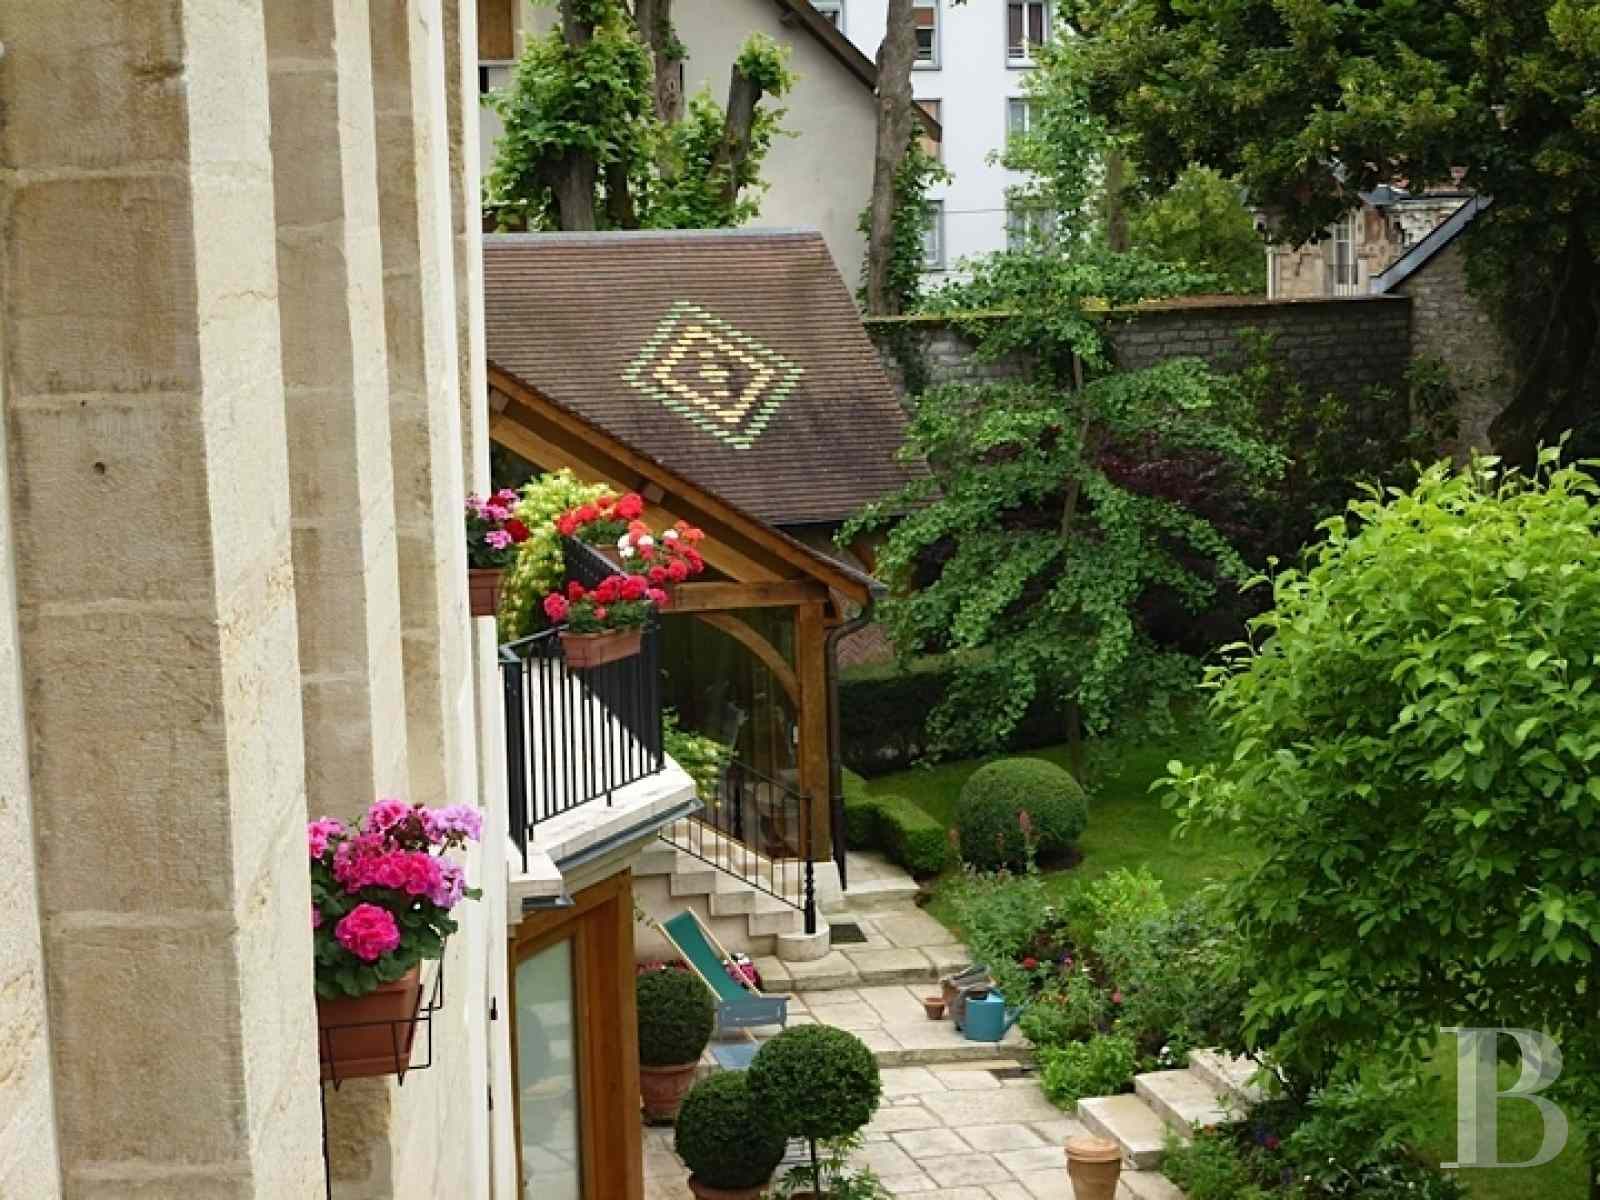 mansion houses for sale France burgundy flat garden - 14 zoom